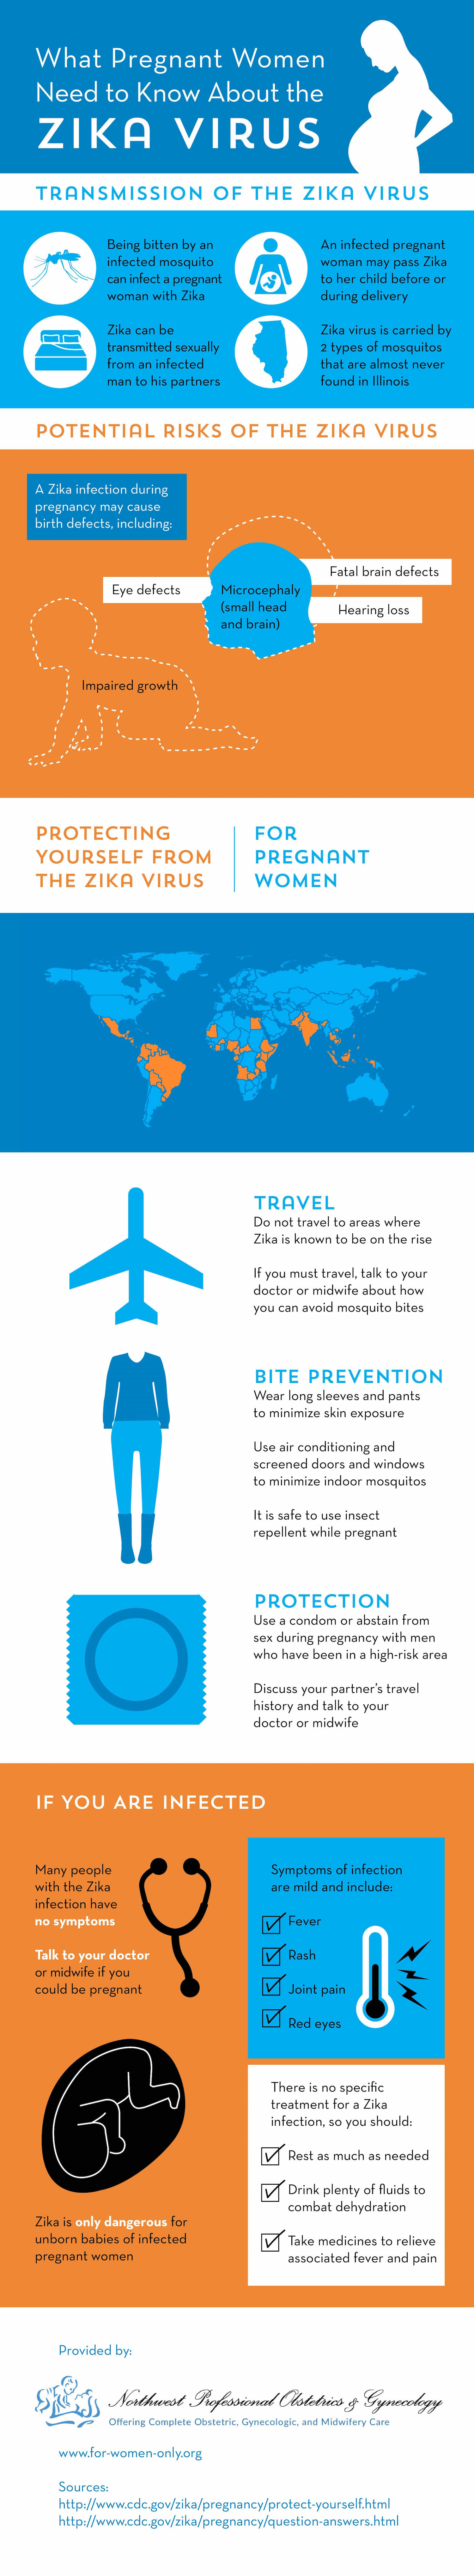 What Pregnant Women Need to Know About the Zika Virus  Infographic